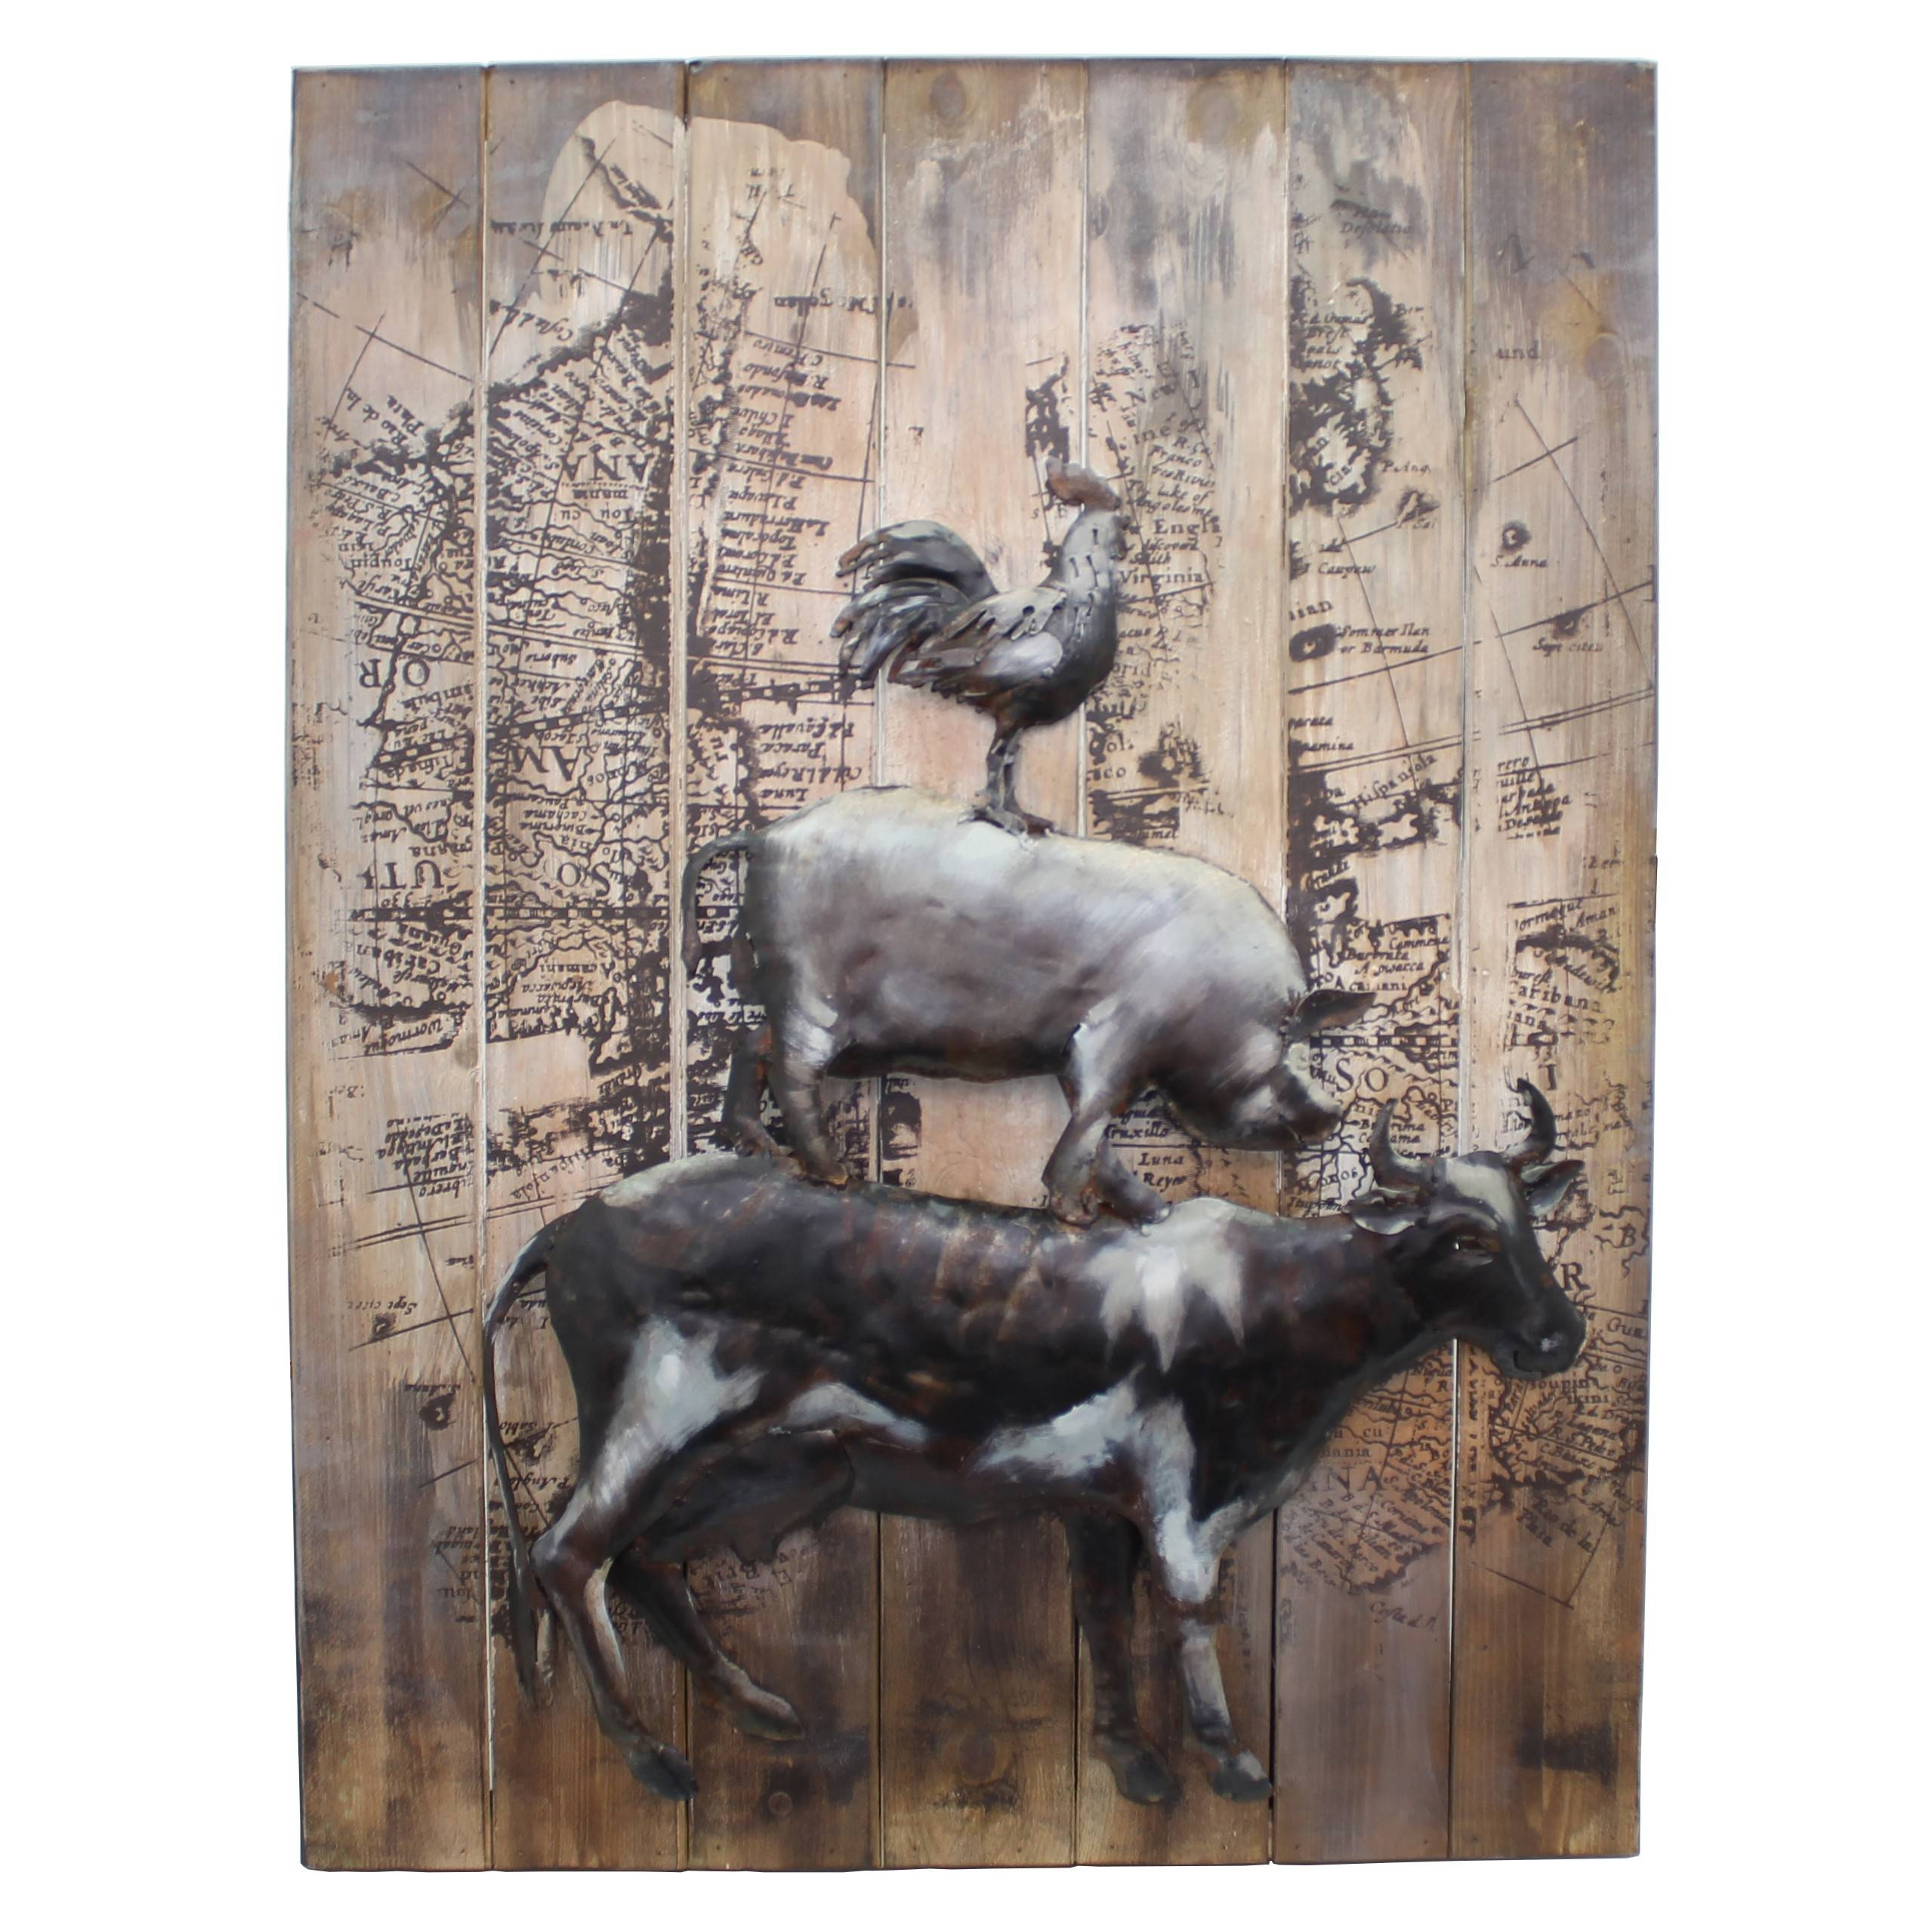 Piggyback' Farmyard Animals 3D Metal Wall Art – Home & Interiors Intended For Most Current Animals 3D Wall Art (View 17 of 20)